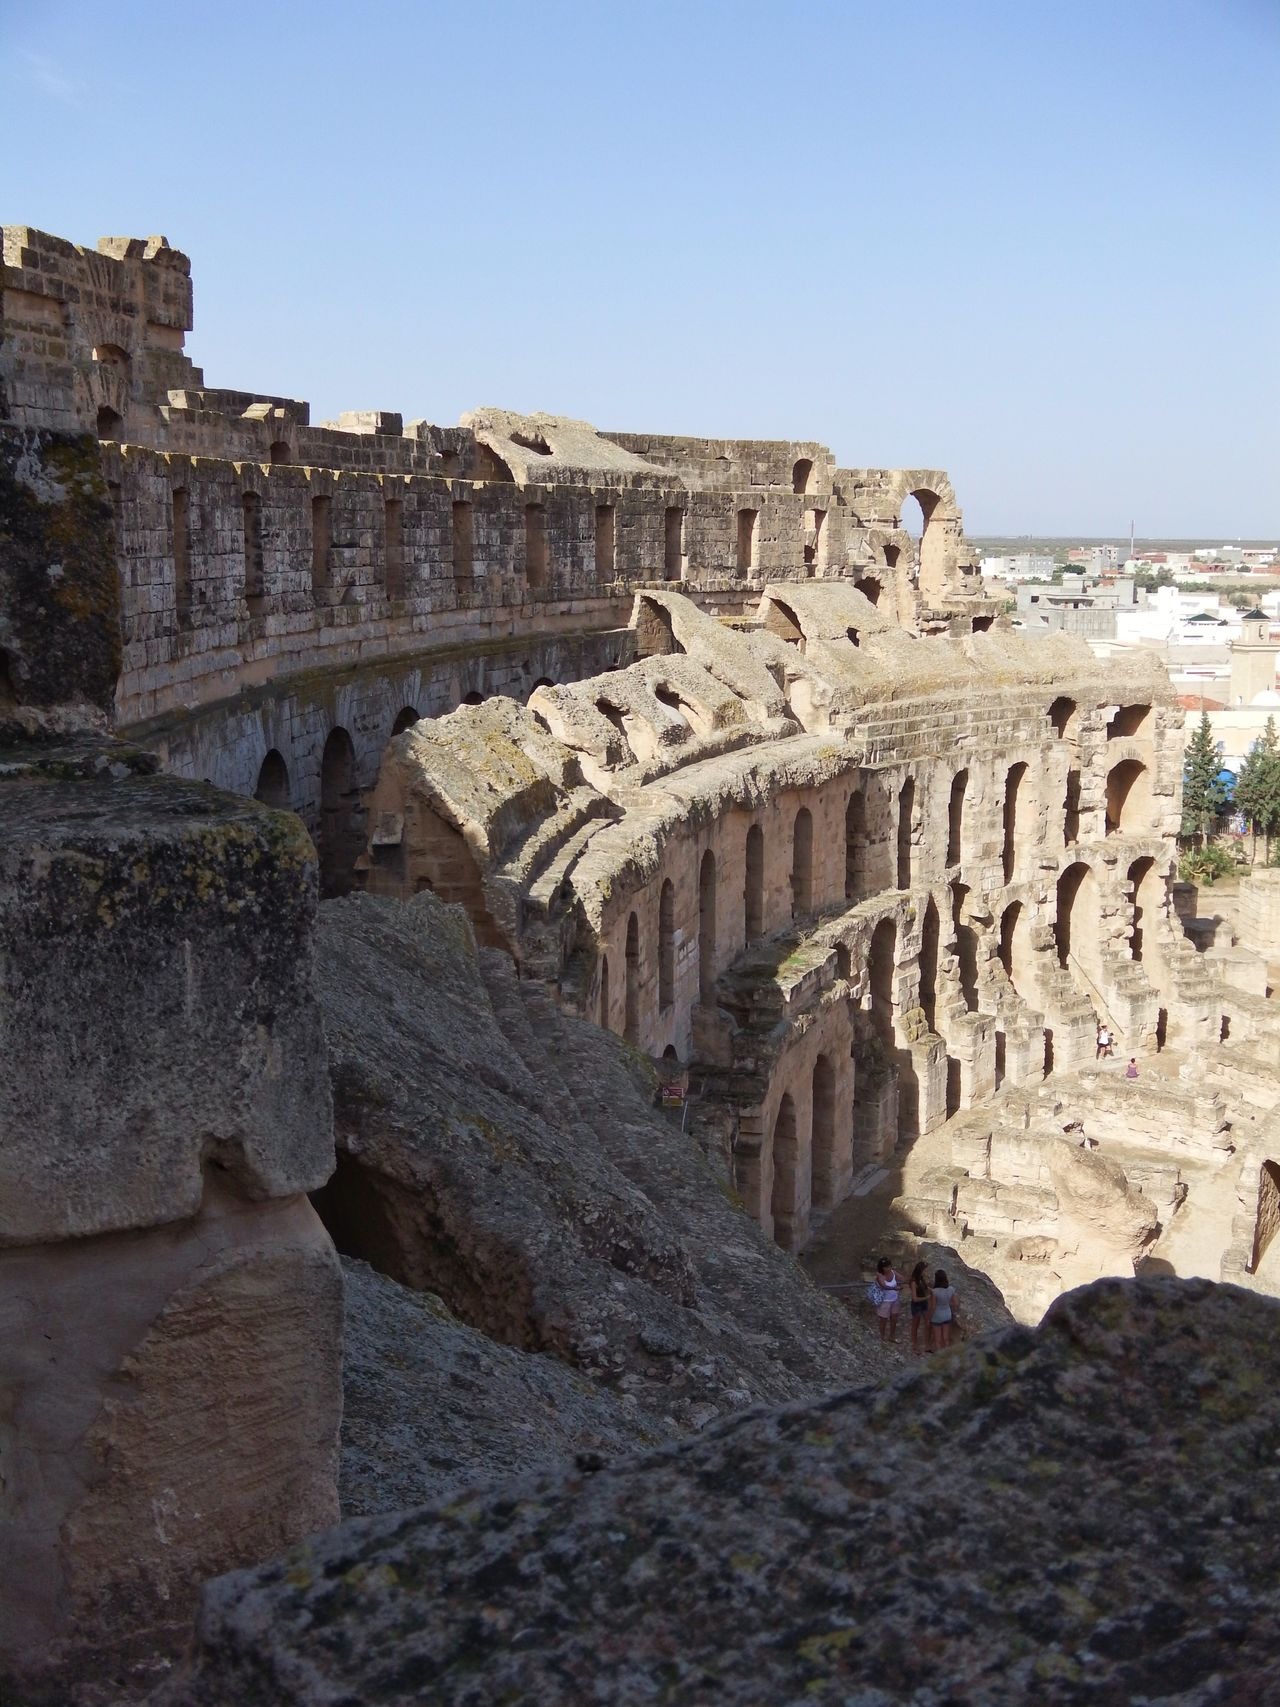 Ruin Amphitheatre Blue Sky Sunshine Summer Traveling El Djem Tunesia Ancient Ancient Architecture Ancient Ruins Historic Historical Building Day